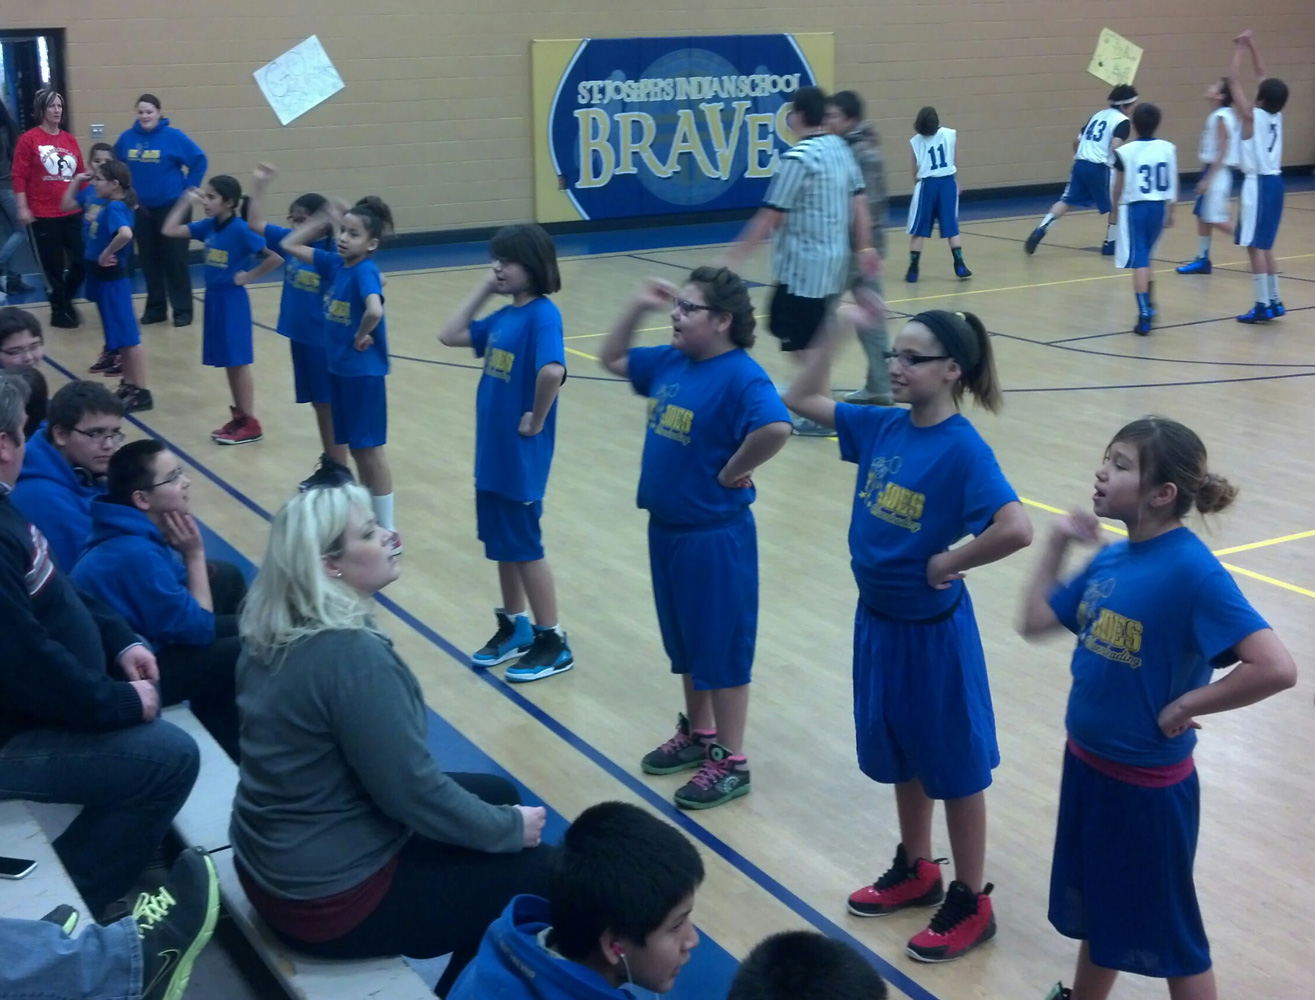 St. Joseph's students participate in all kinds of sports, including basketball and cheerleading, at our rec center.